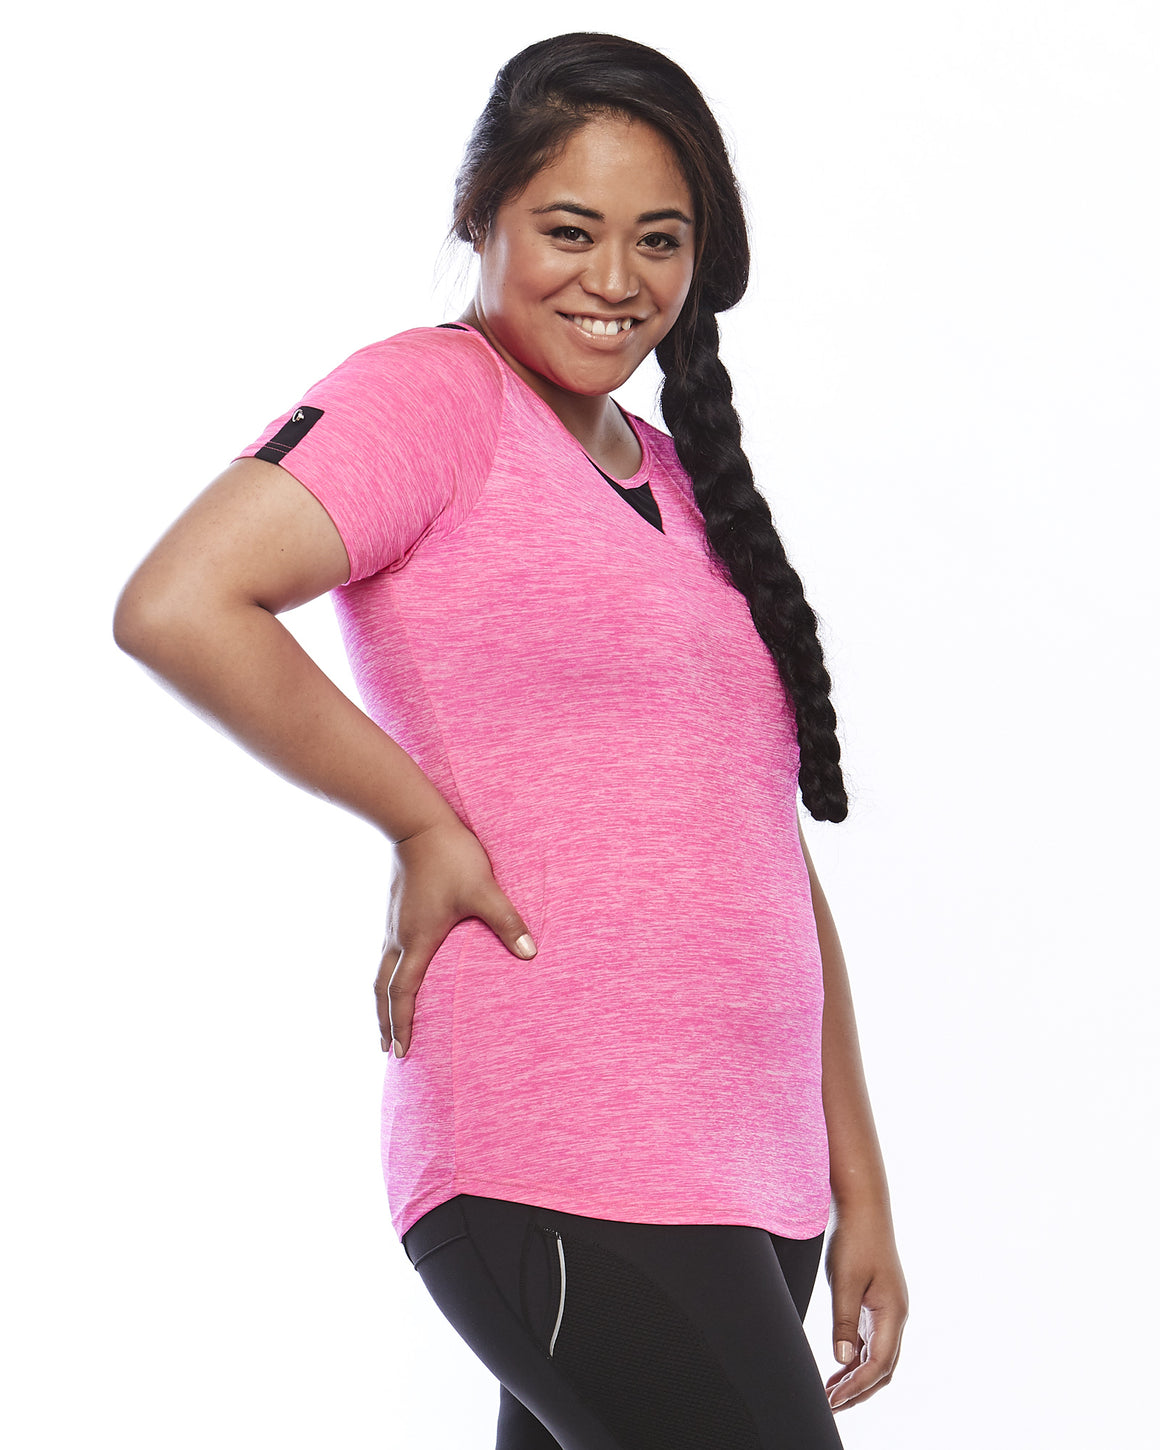 Side view Zest Plus Size Sports Top from Lowanna Australia